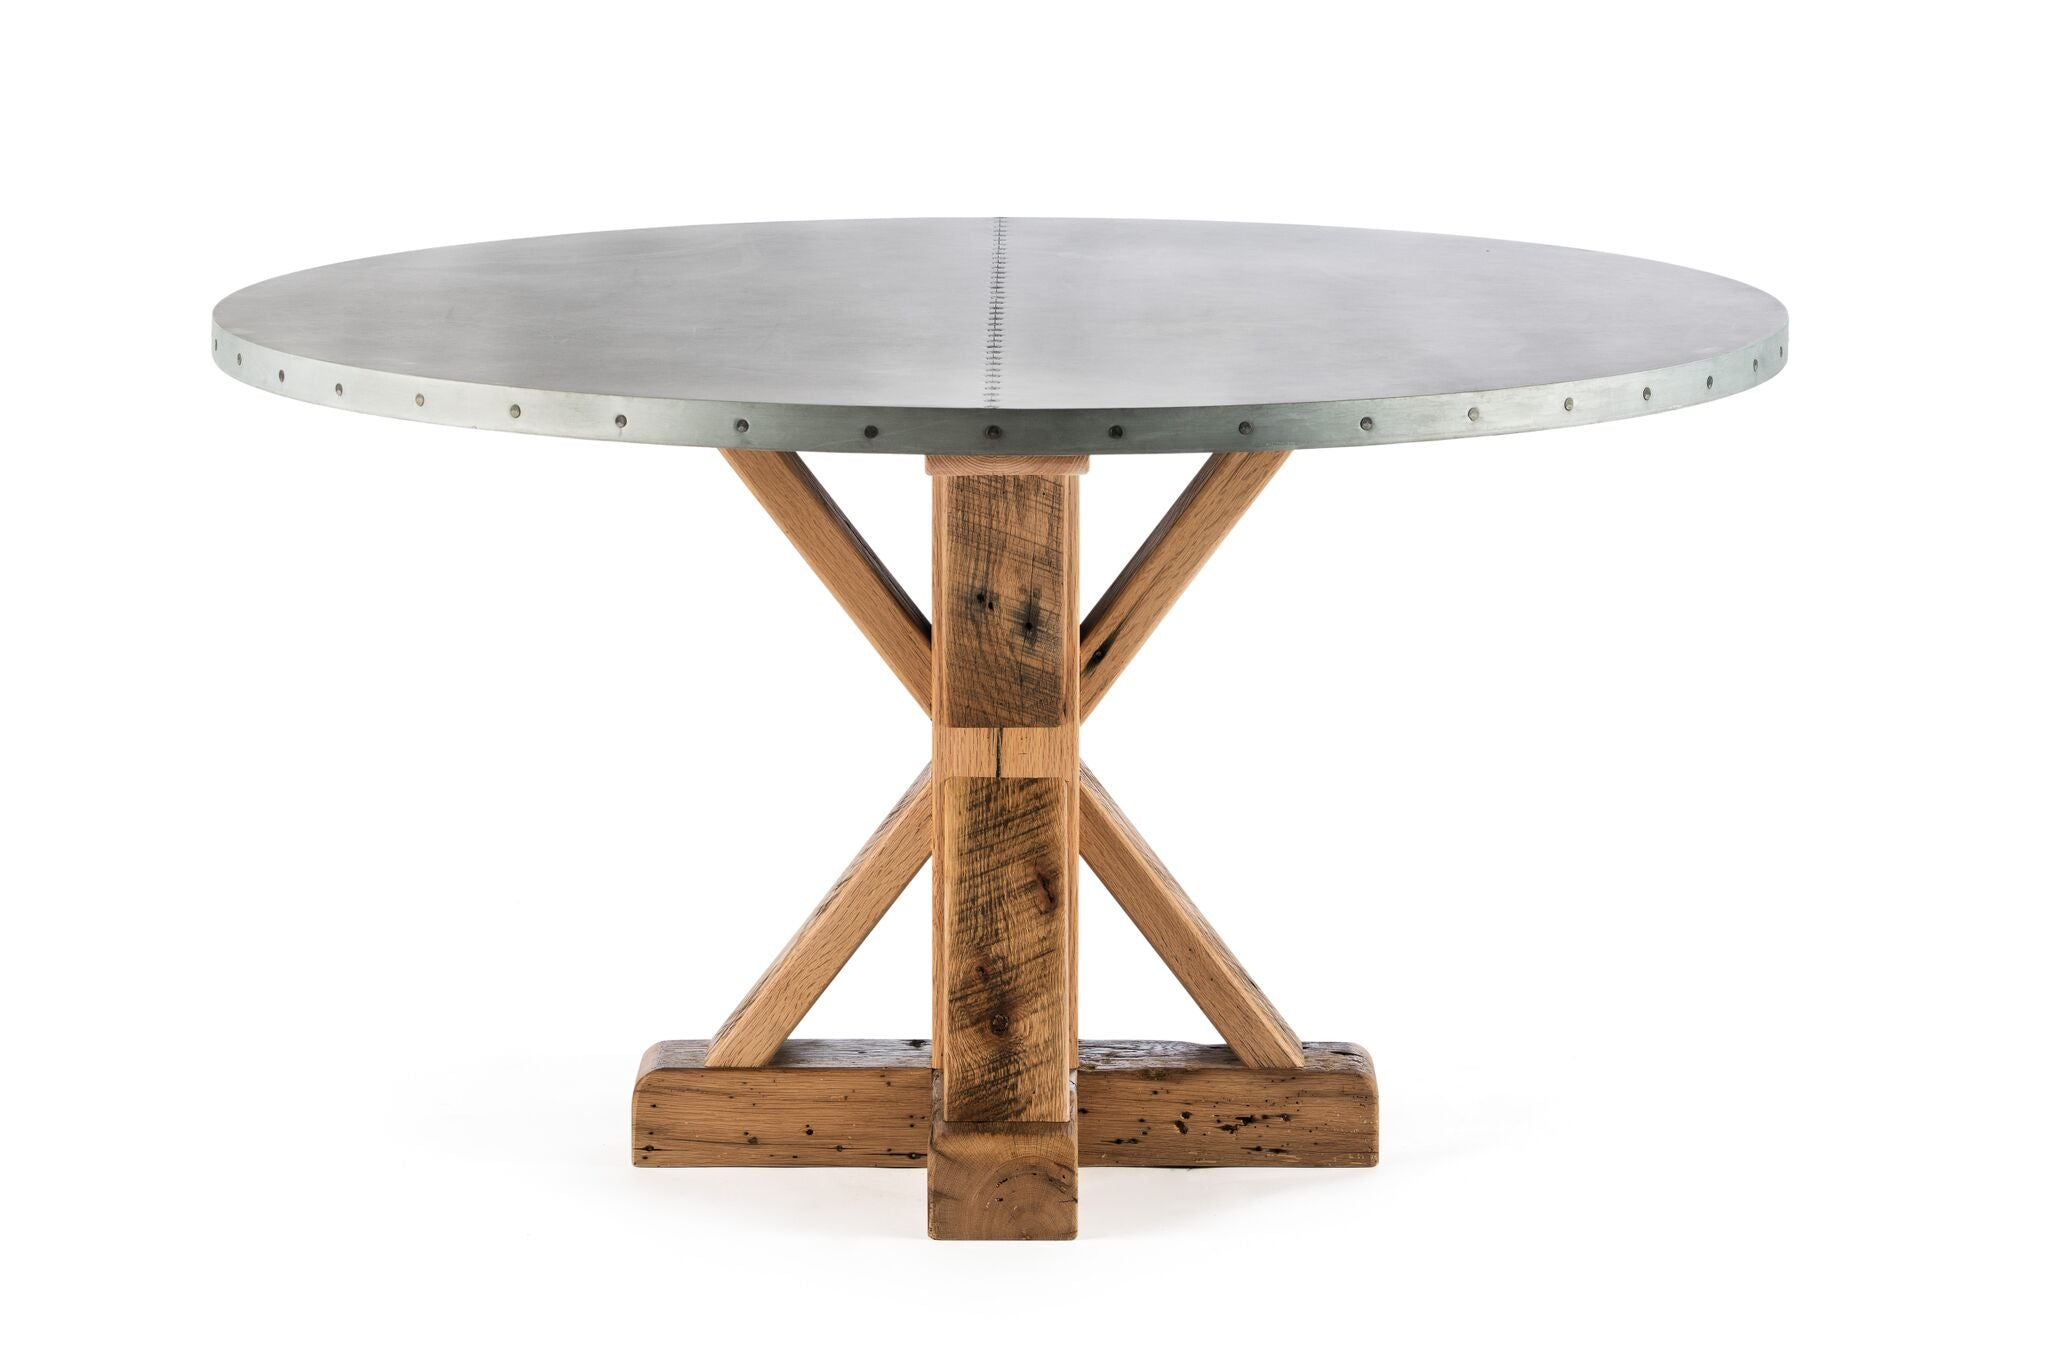 Zinc Round Tables | French Trestle Table | CLASSIC | Weathered Grey on Reclaimed Oak | 66"